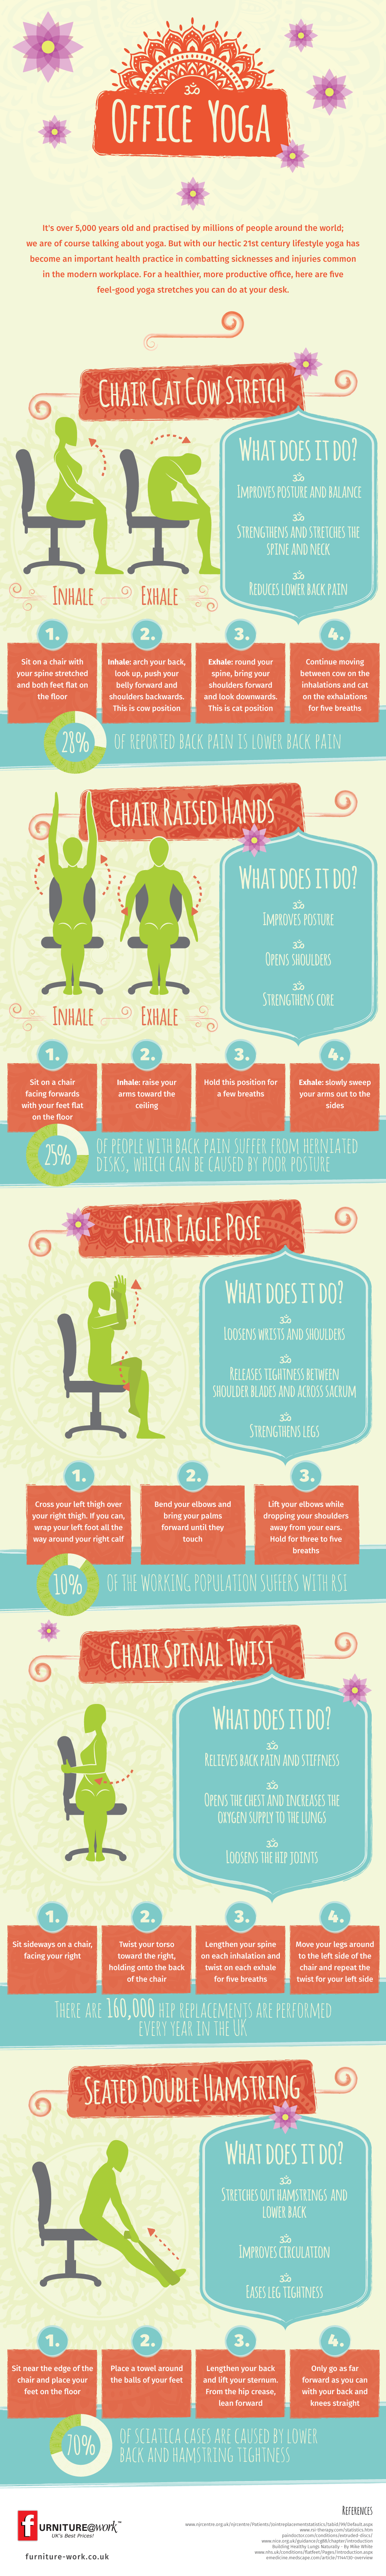 Furniture at Work - #OfficeYoga Infographic